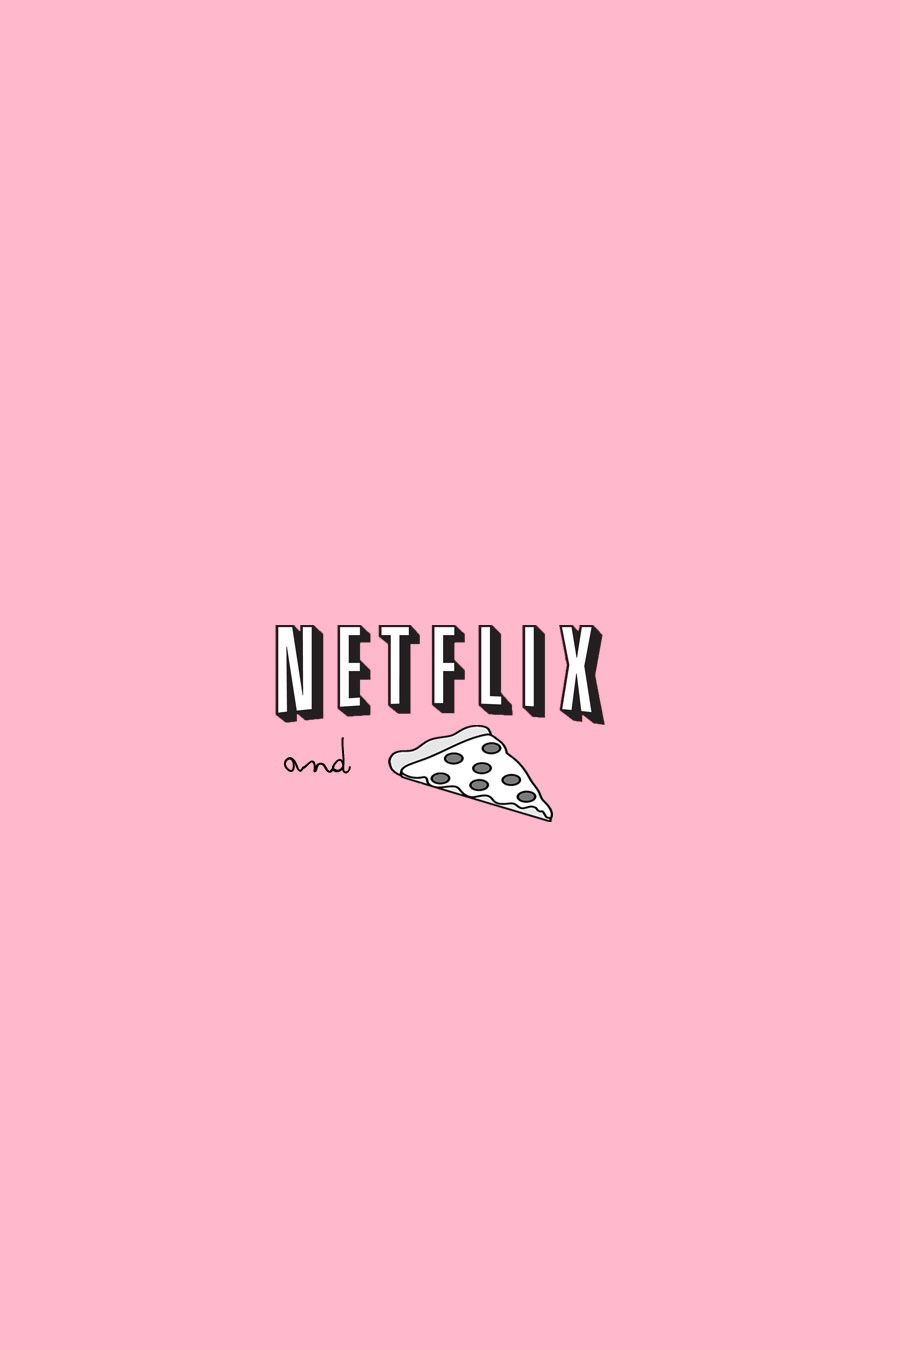 Funny Iphone Wallpaper Quotes 7 Of The Best Upcomimg Netflix Shows For 2017 187 Little